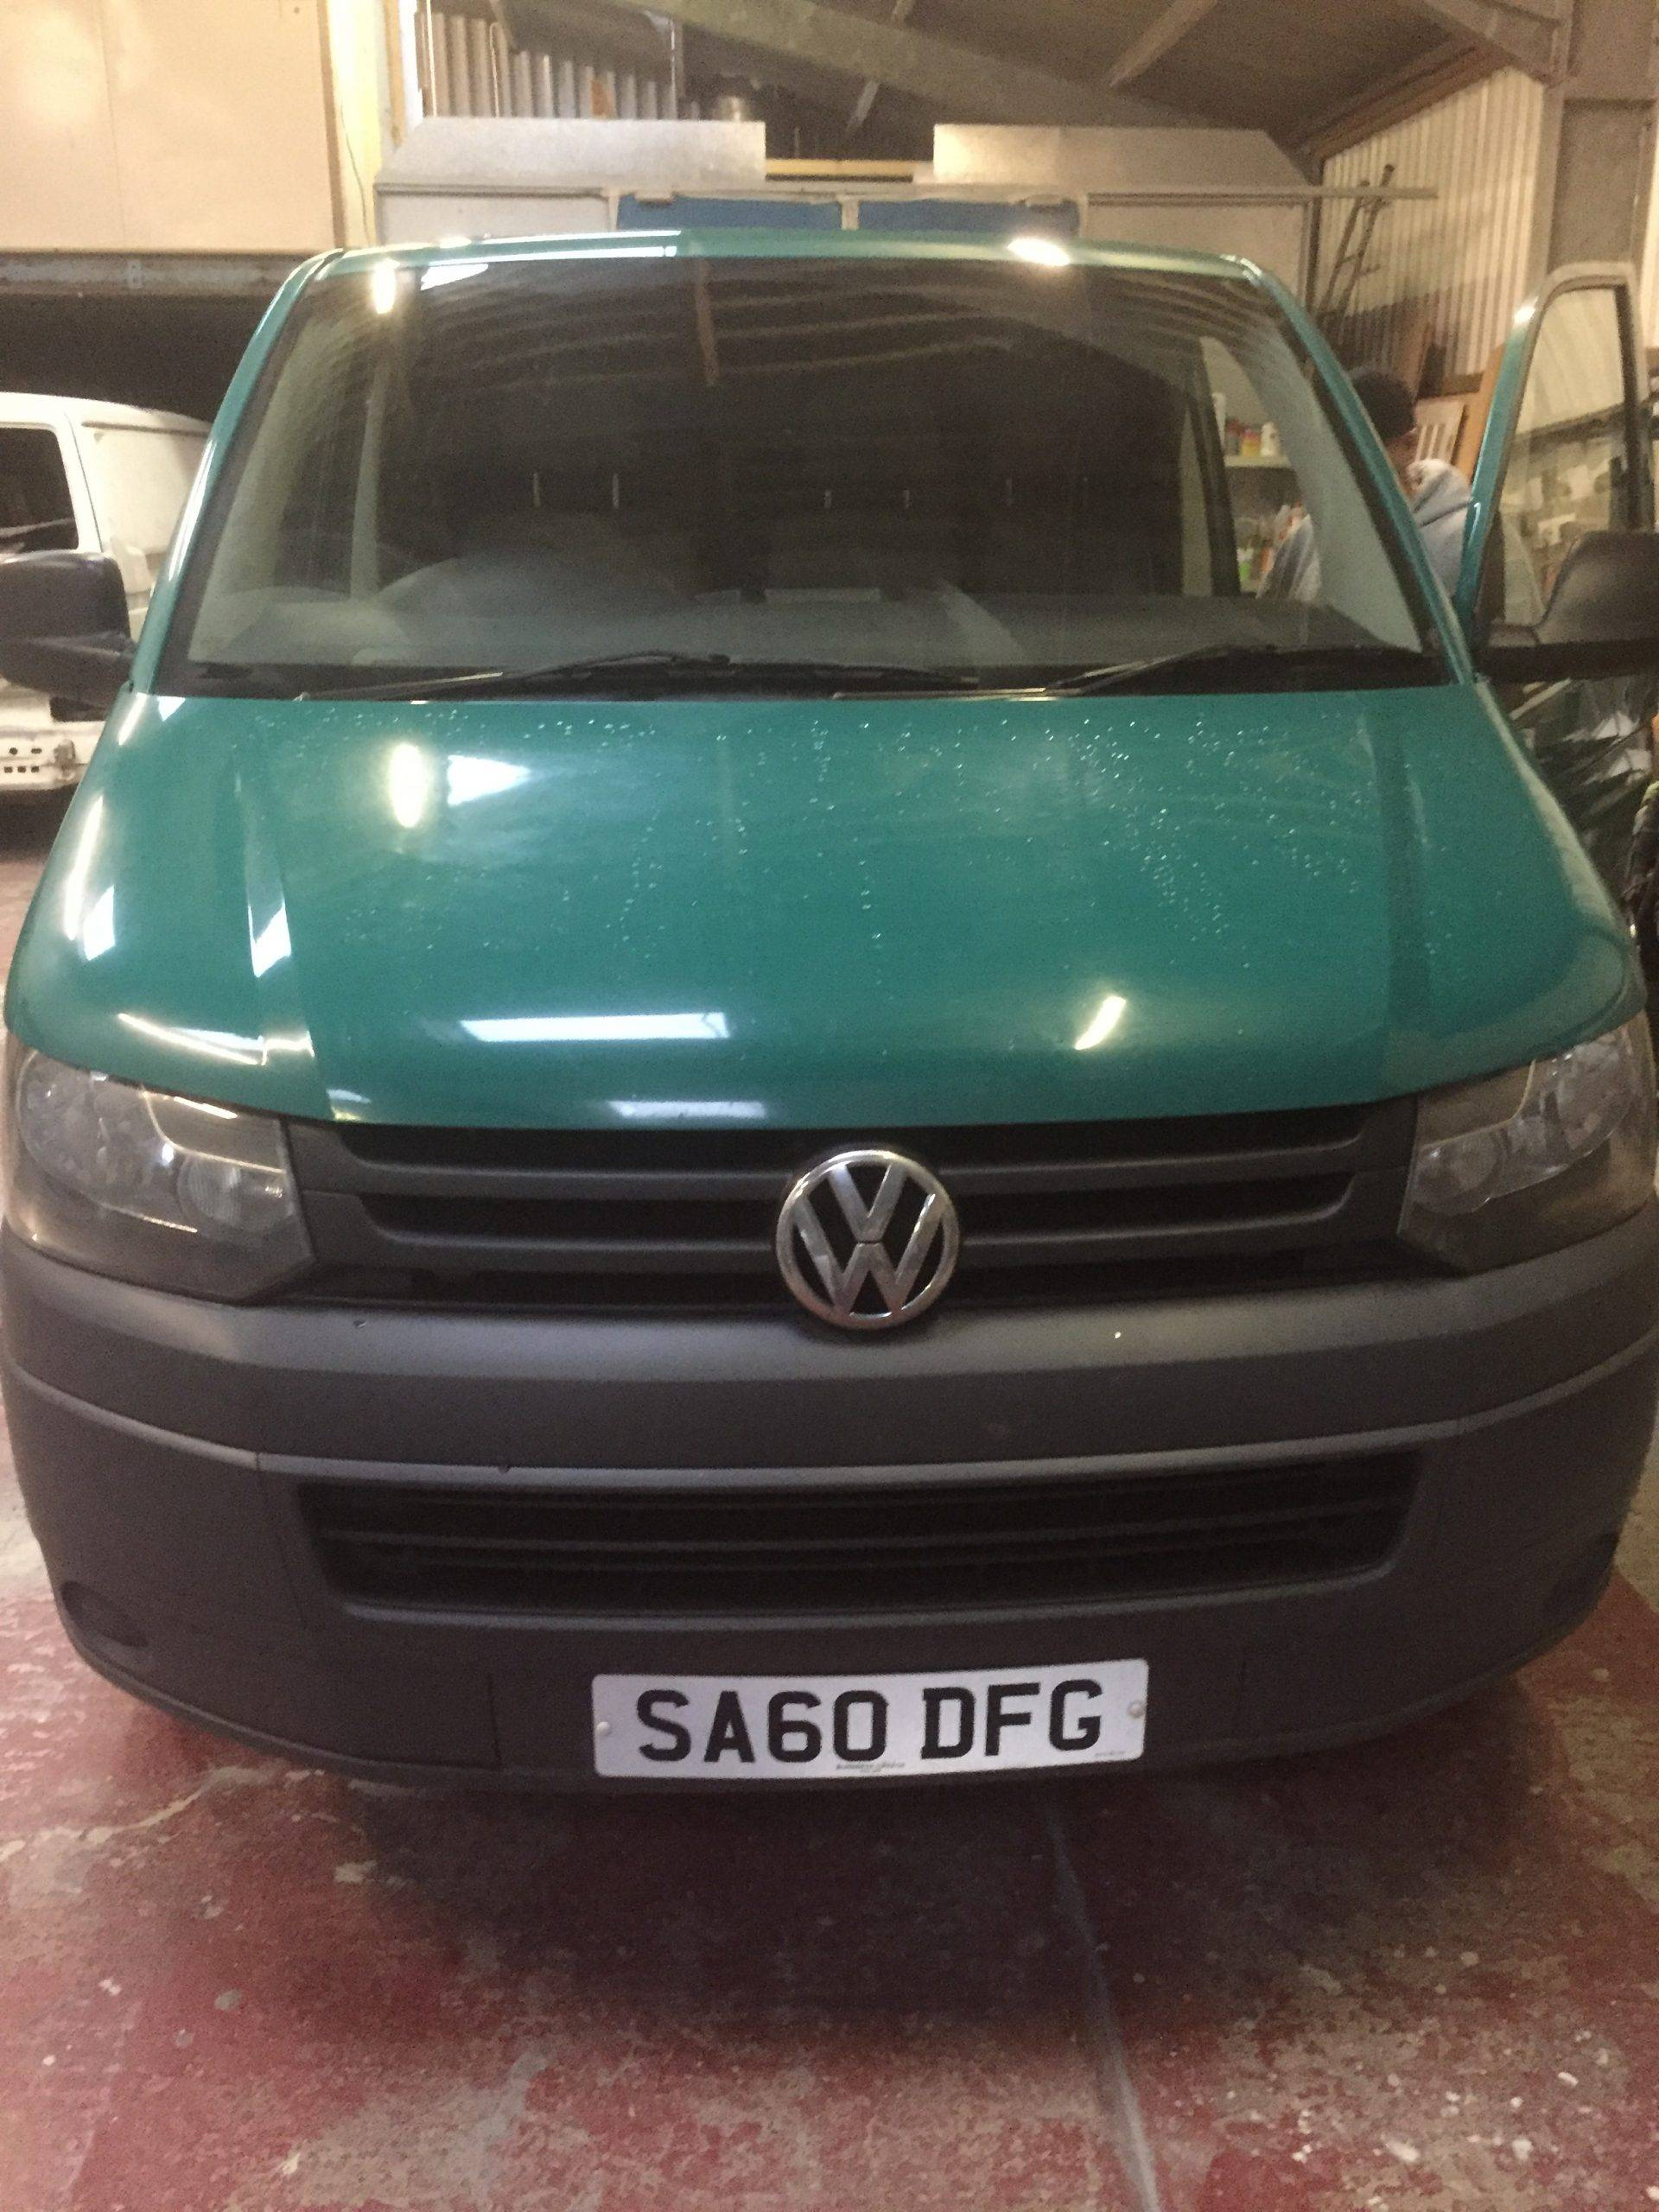 60 plate green camper van getting paint job